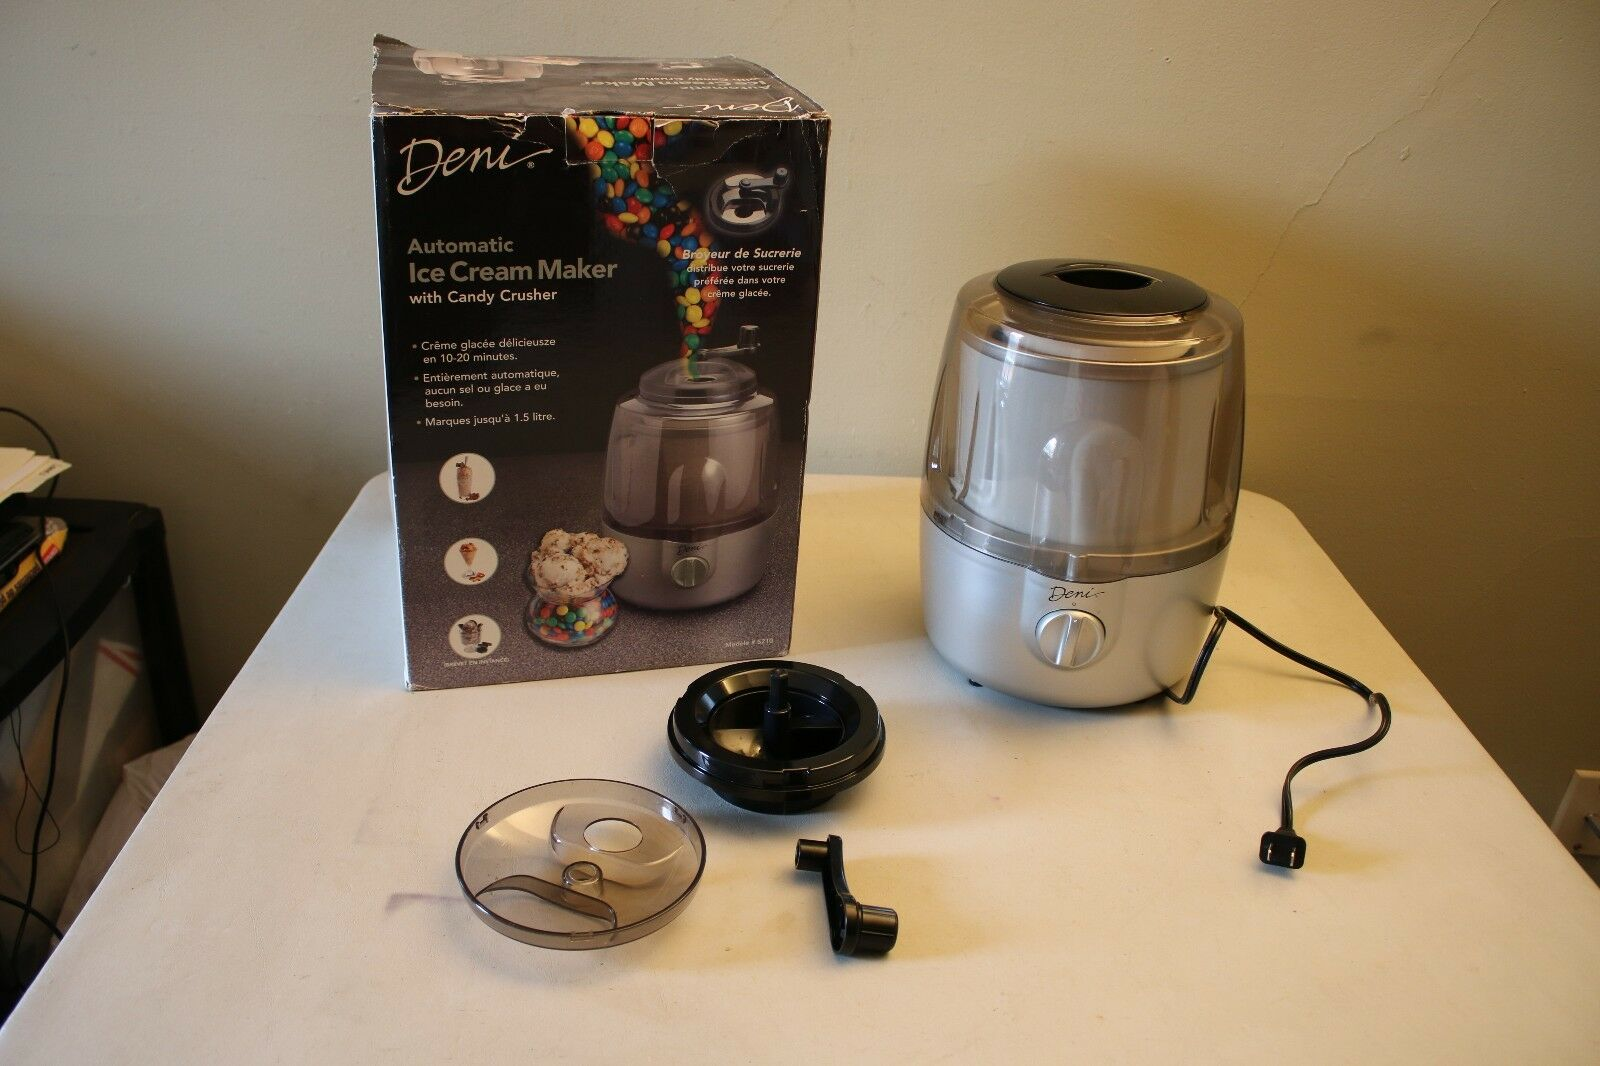 Deni Automatic Ice Cream Maker